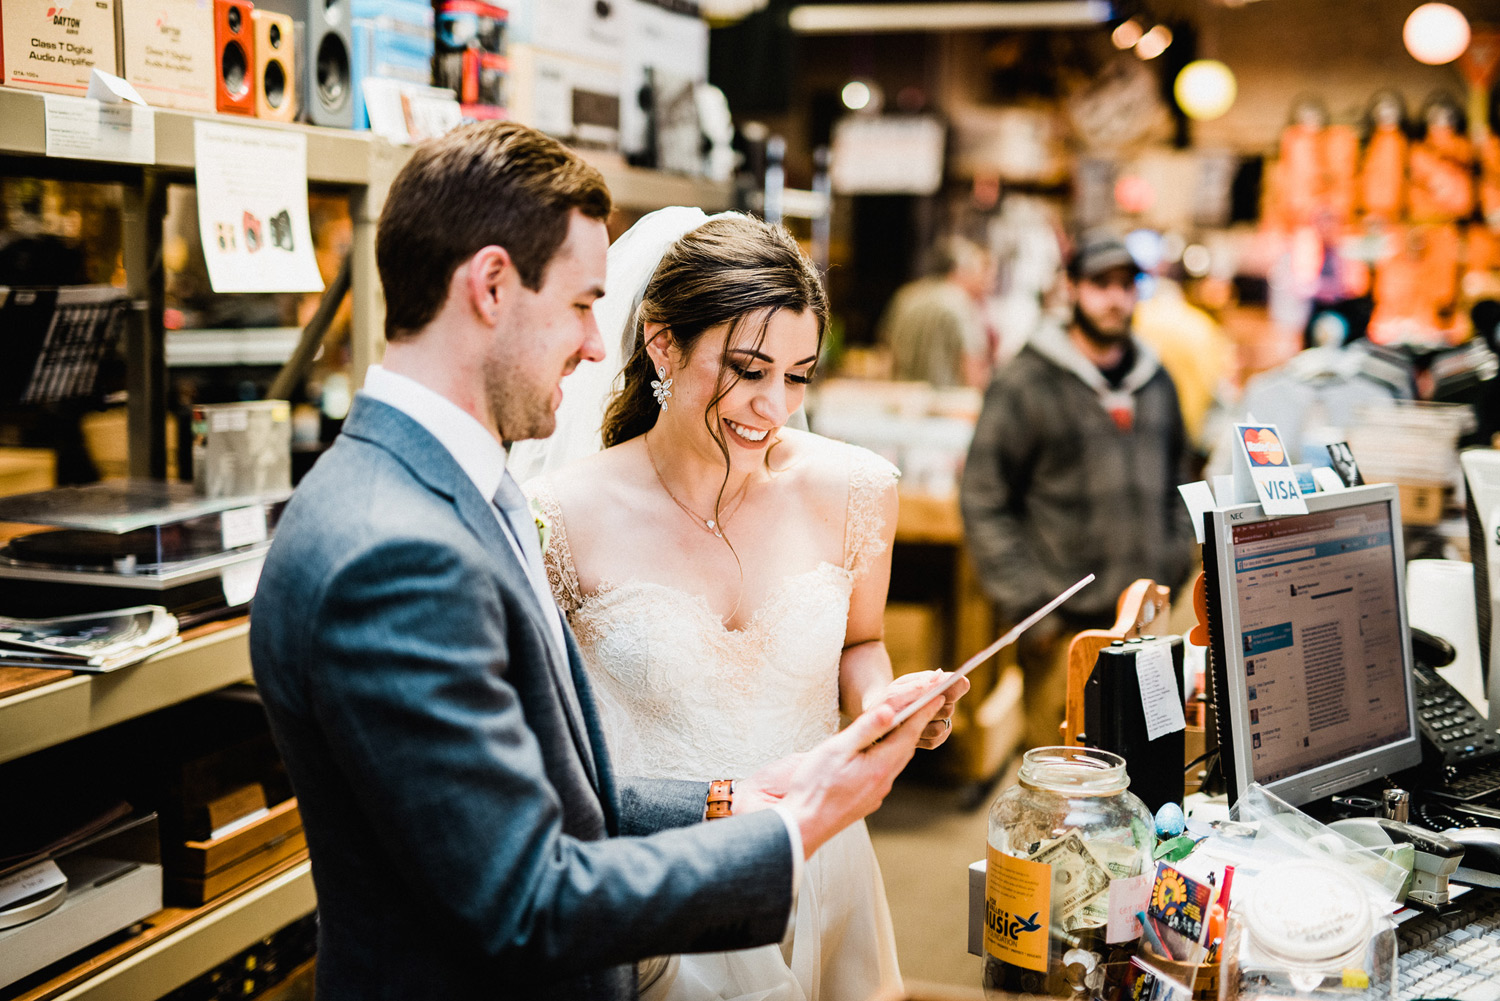 newlyweds buying album at kiss the sky records on their wedding day